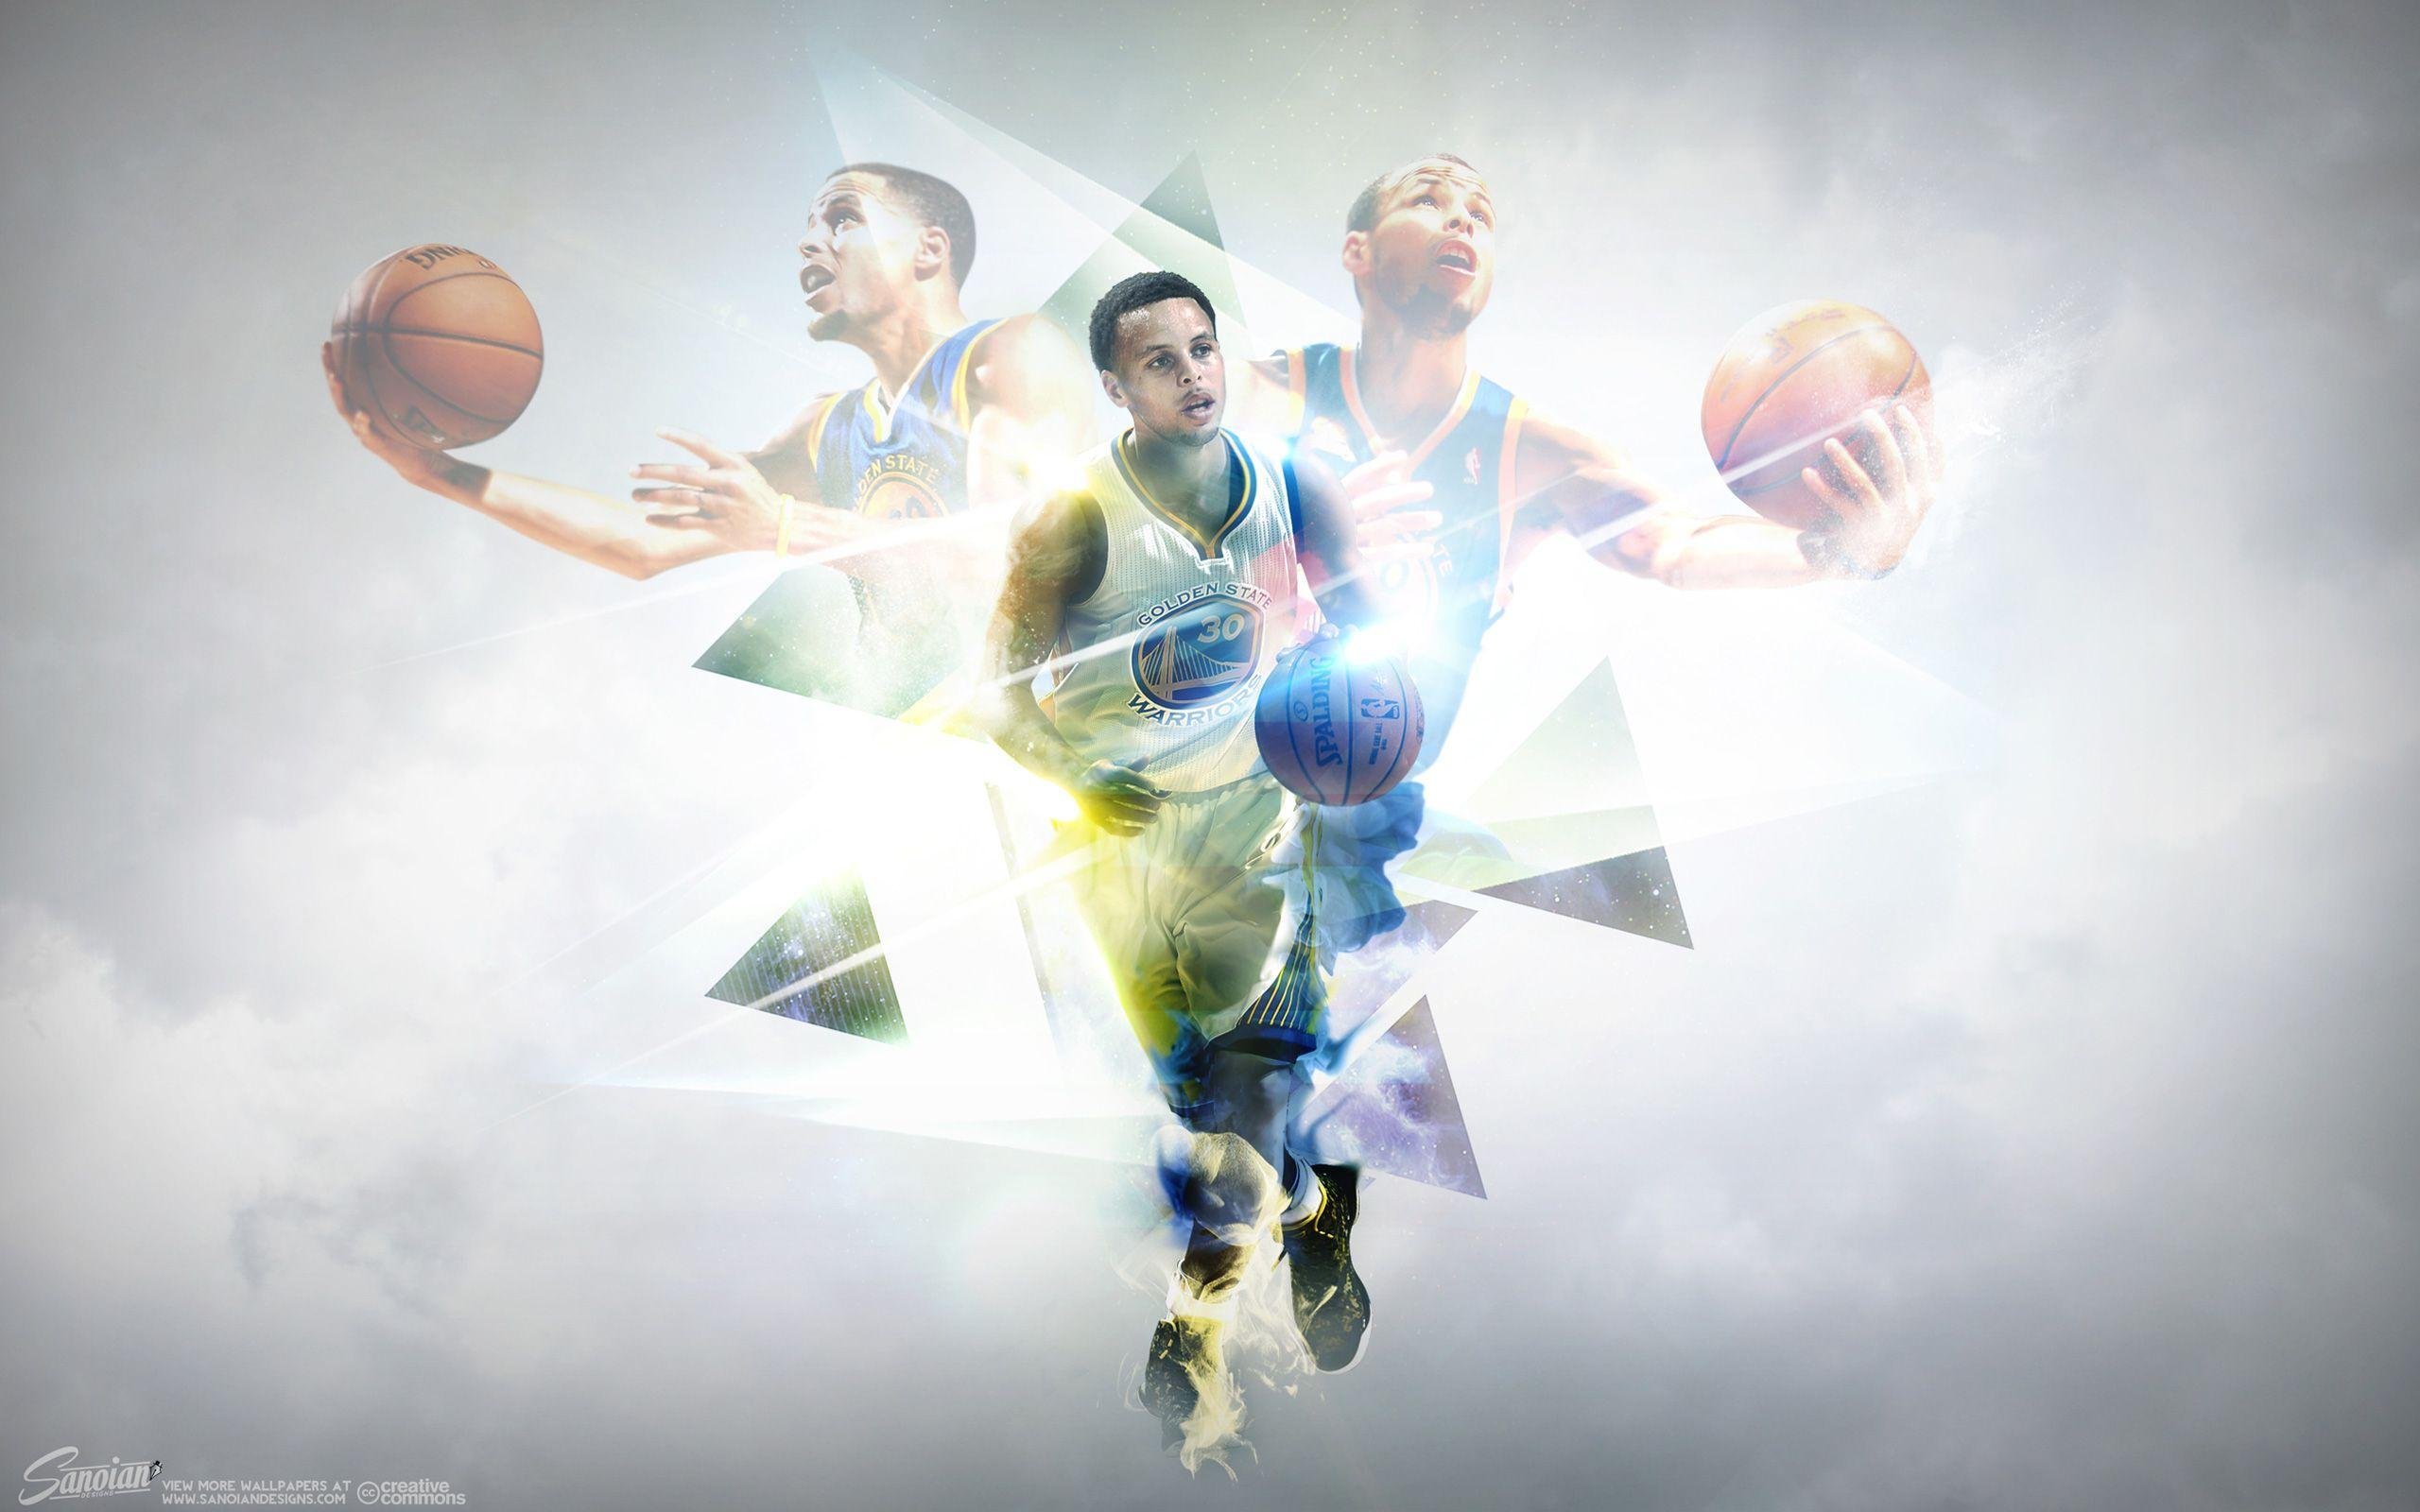 1000+ images about Stephen curry on Pinterest | Stephen curry .